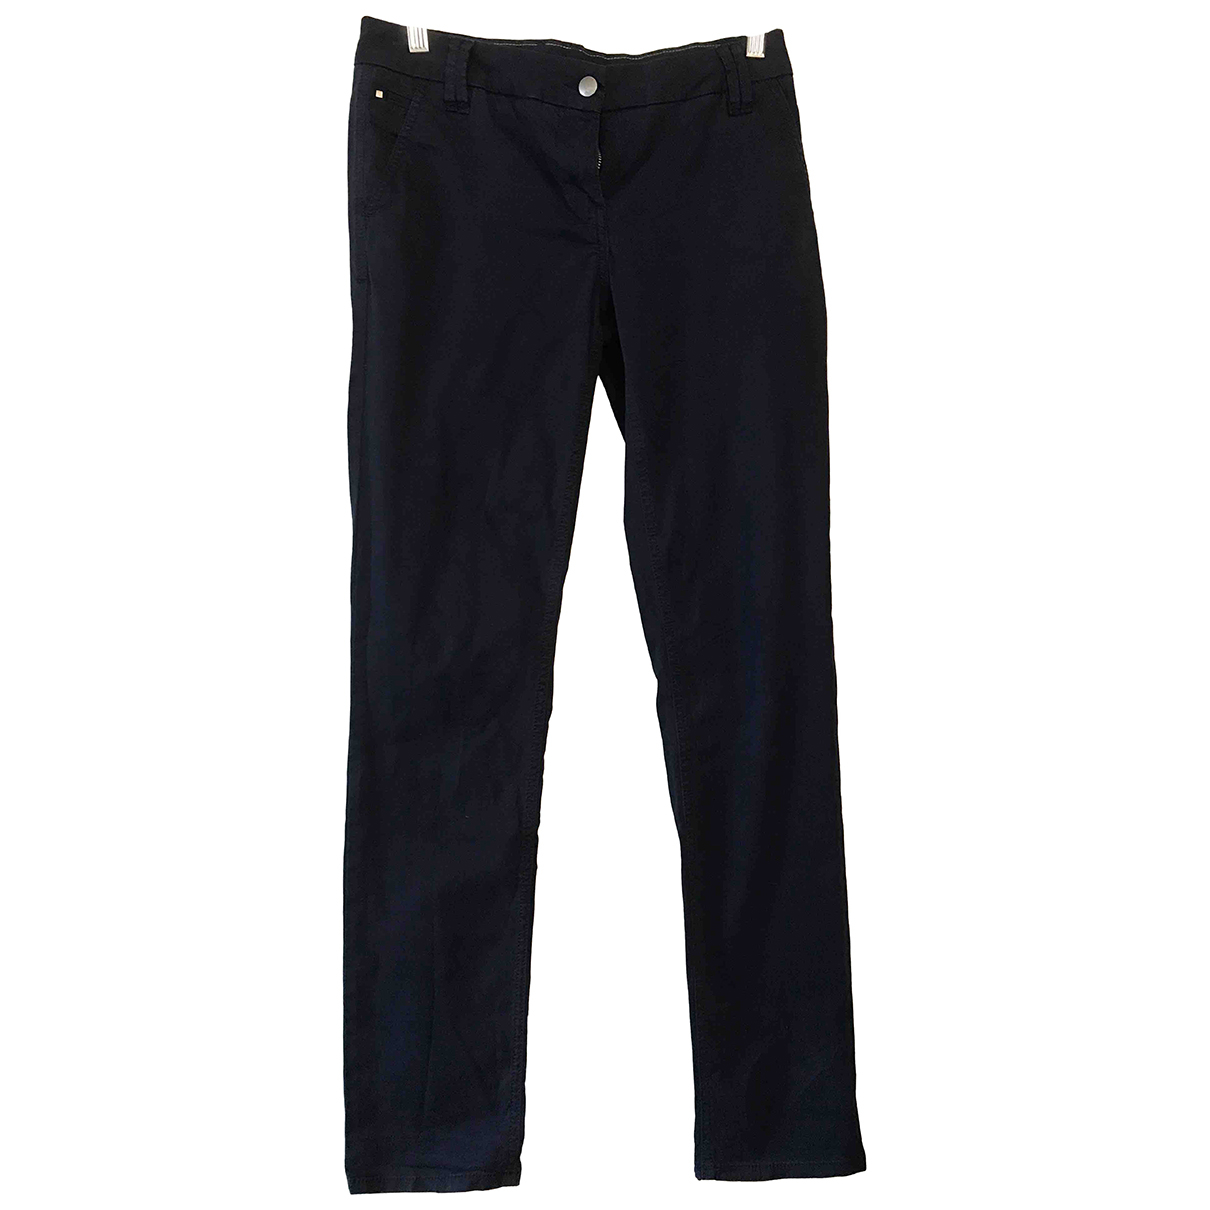 Tommy Hilfiger N Blue Cotton Trousers for Women 4 UK